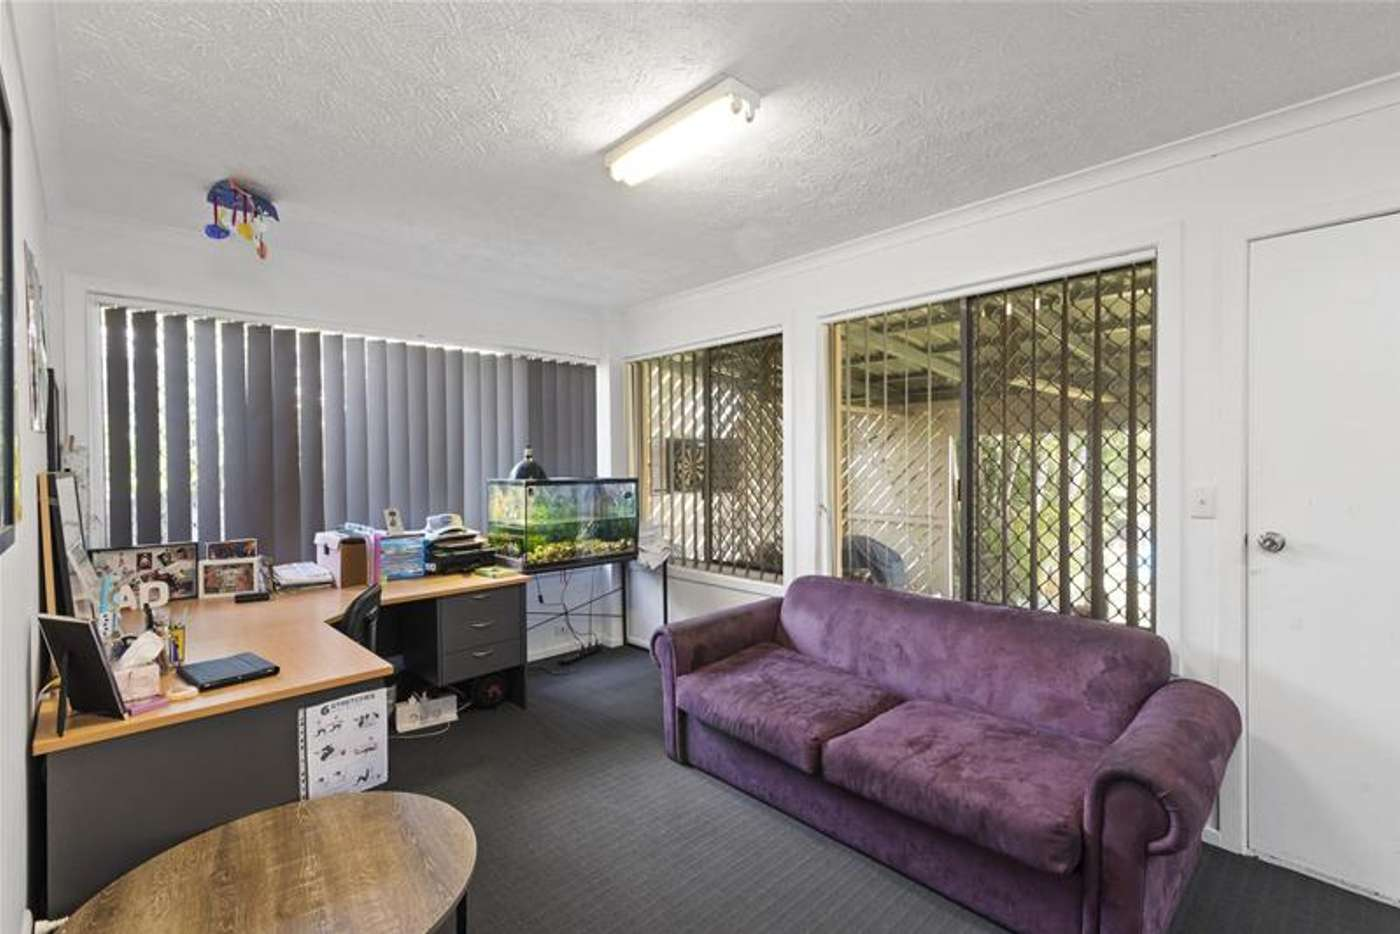 Fifth view of Homely house listing, 432 Cypress Terrace North, Palm Beach QLD 4221